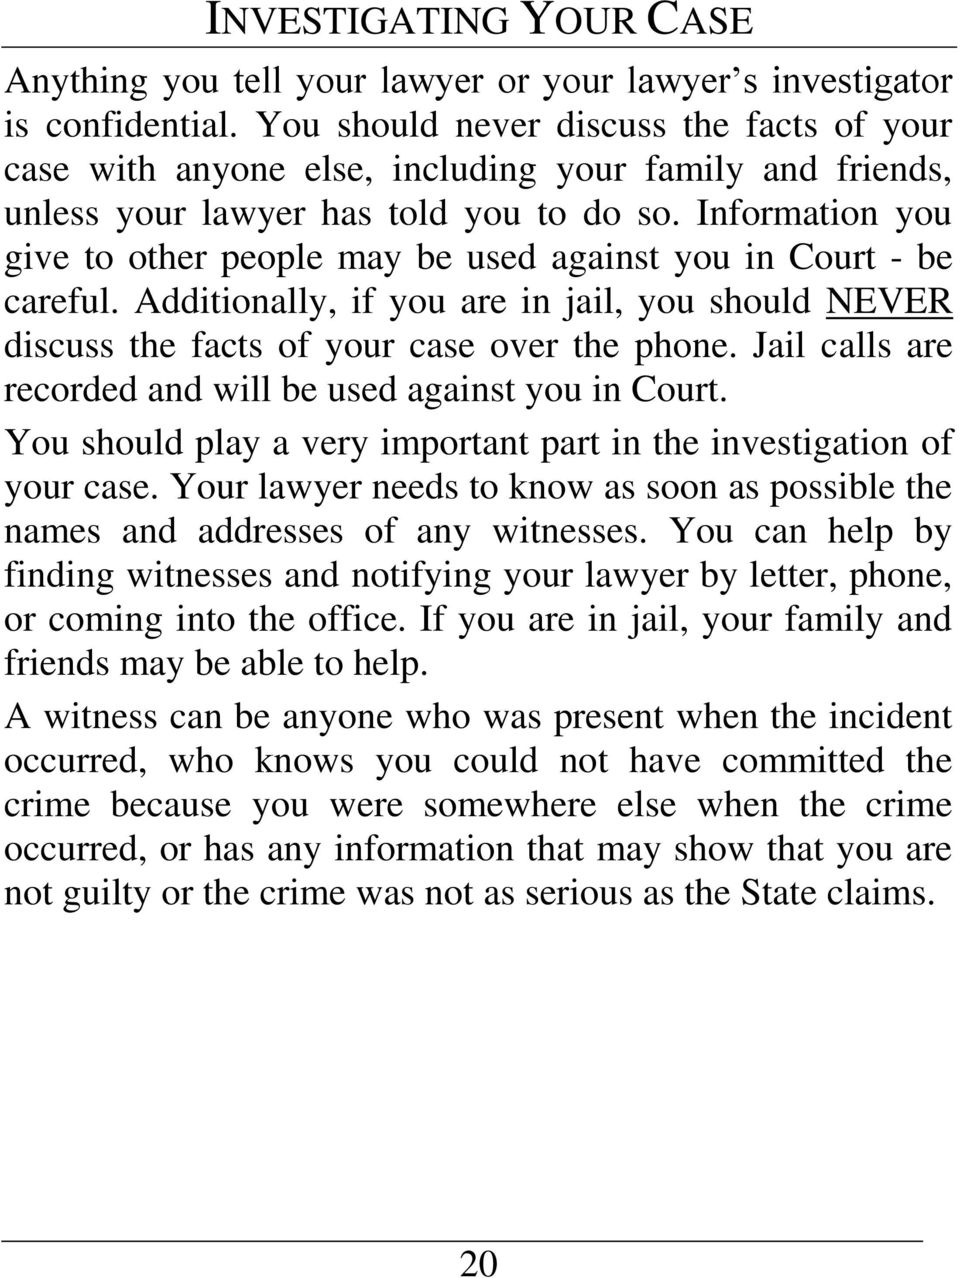 Information you give to other people may be used against you in Court - be careful. Additionally, if you are in jail, you should NEVER discuss the facts of your case over the phone.